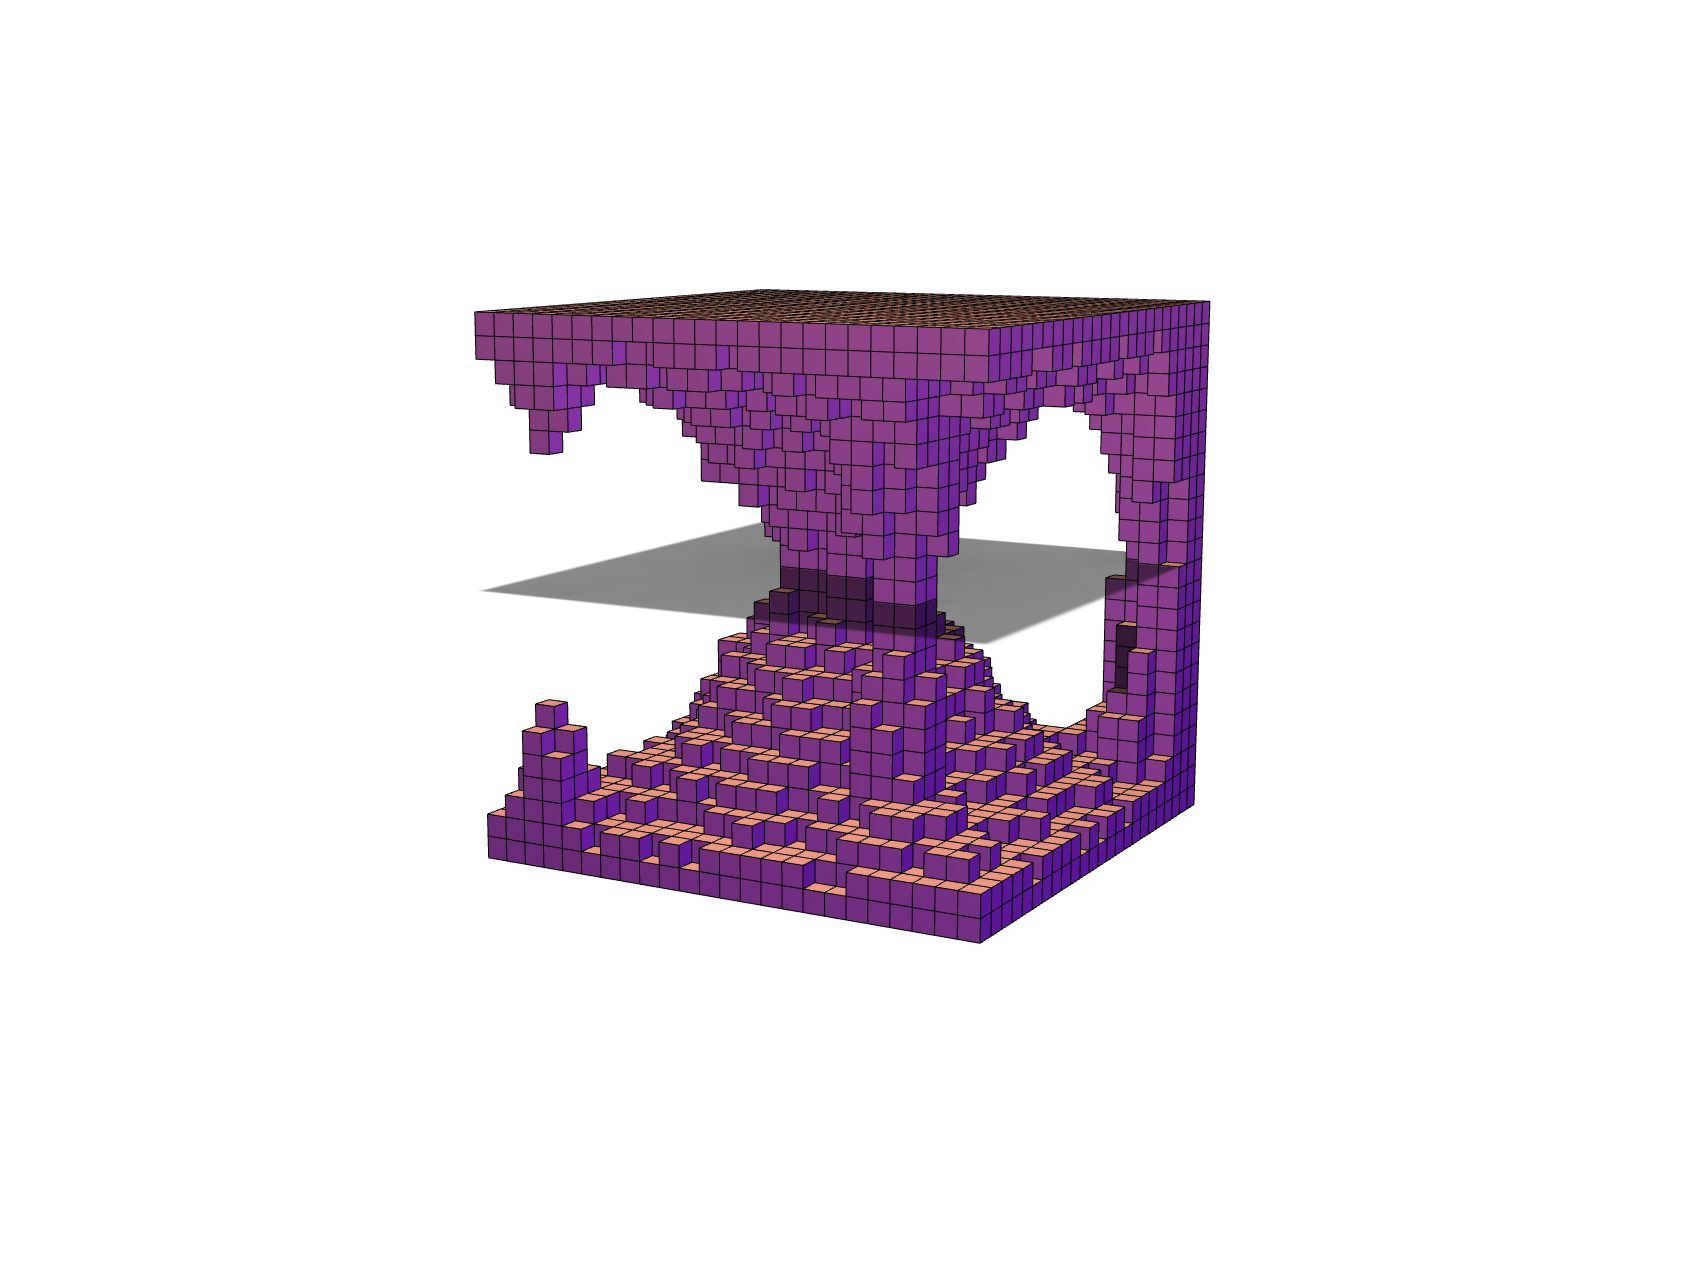 Cave Cube - 3D design by fmac Feb 15, 2018